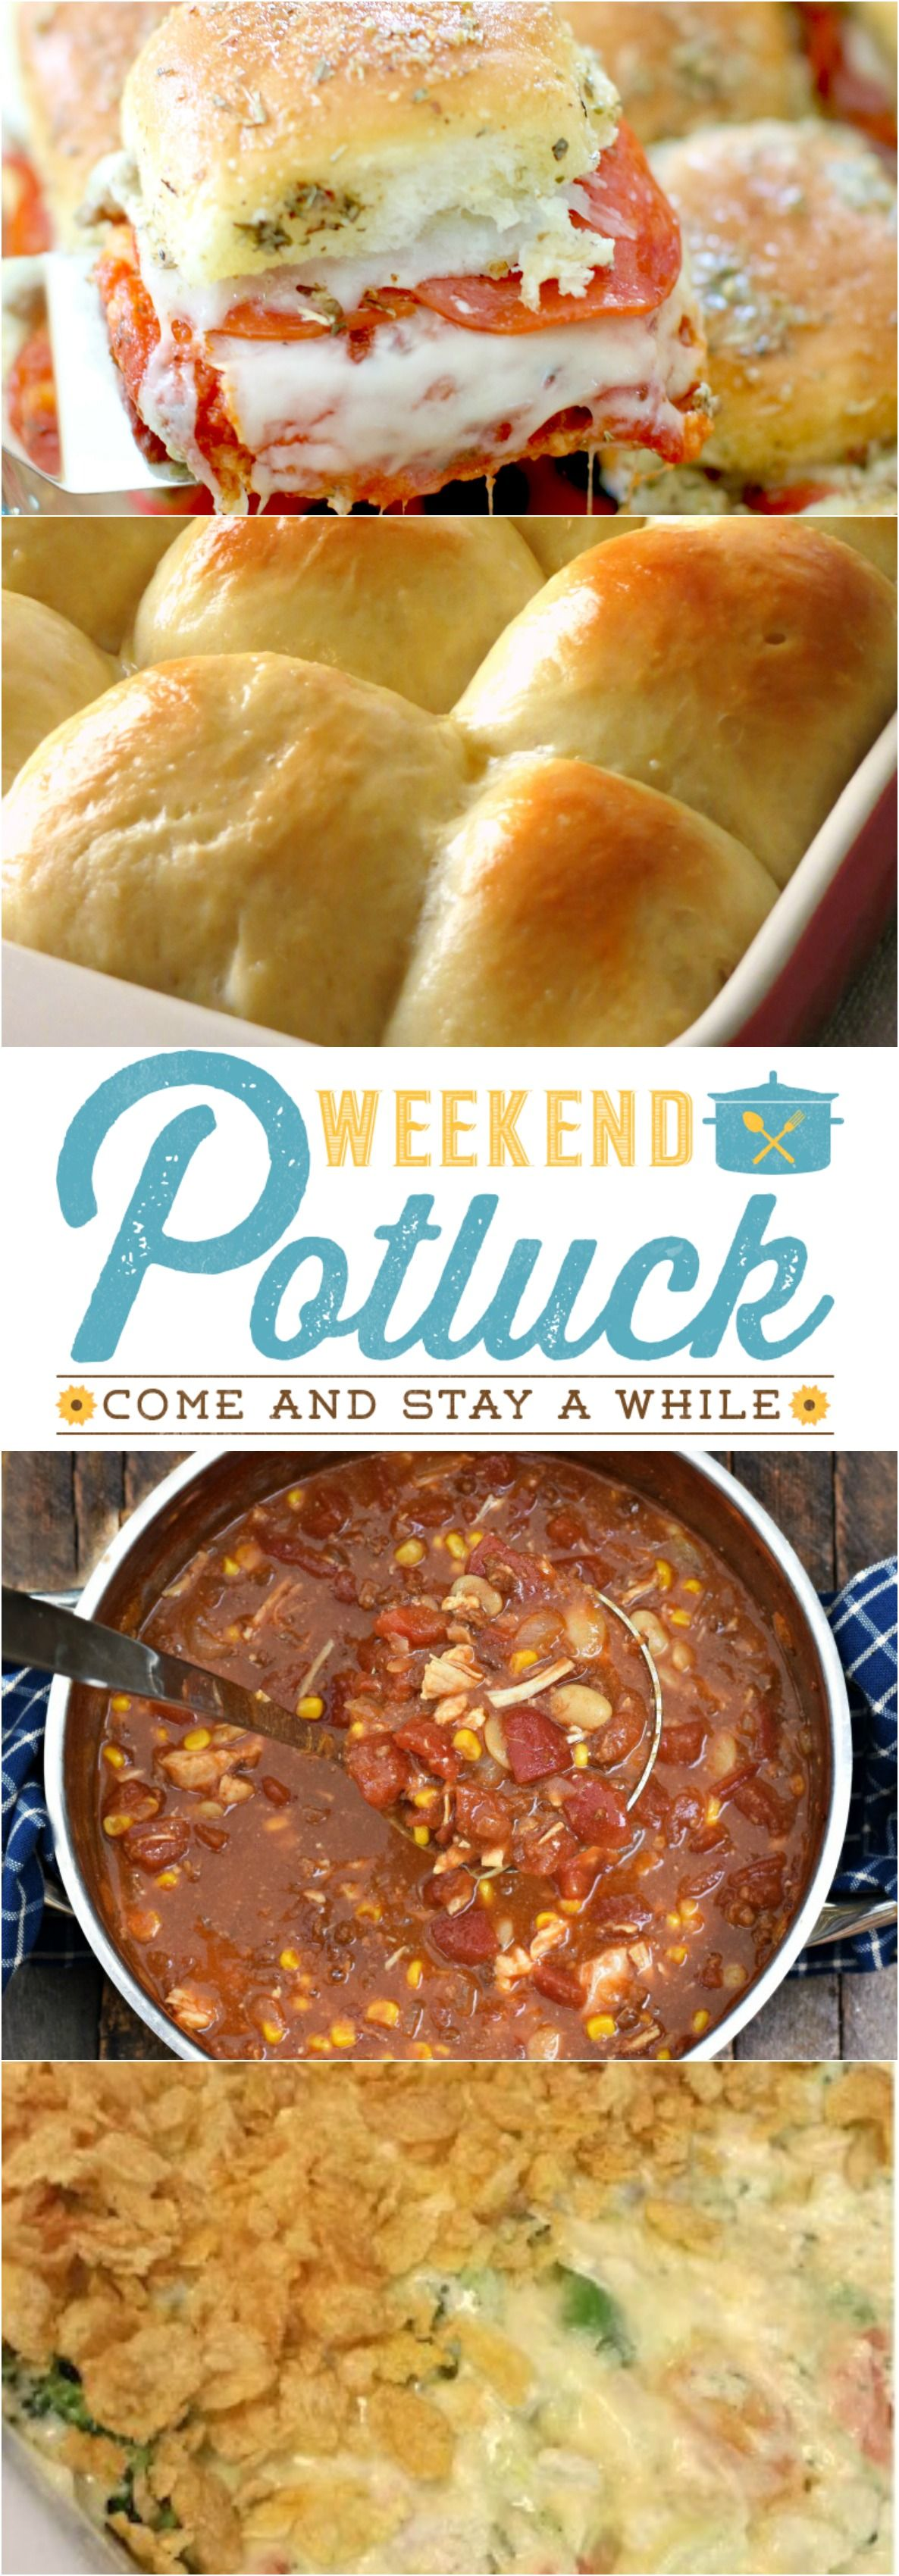 Weekend Potluck at The Country Cook. Featured recipes include: Pizza Pull-Apart Sliders, Light & Sweet Fluffy Rolls, Famous Alabama Stew & Mom's Creamy Chicken Casserole